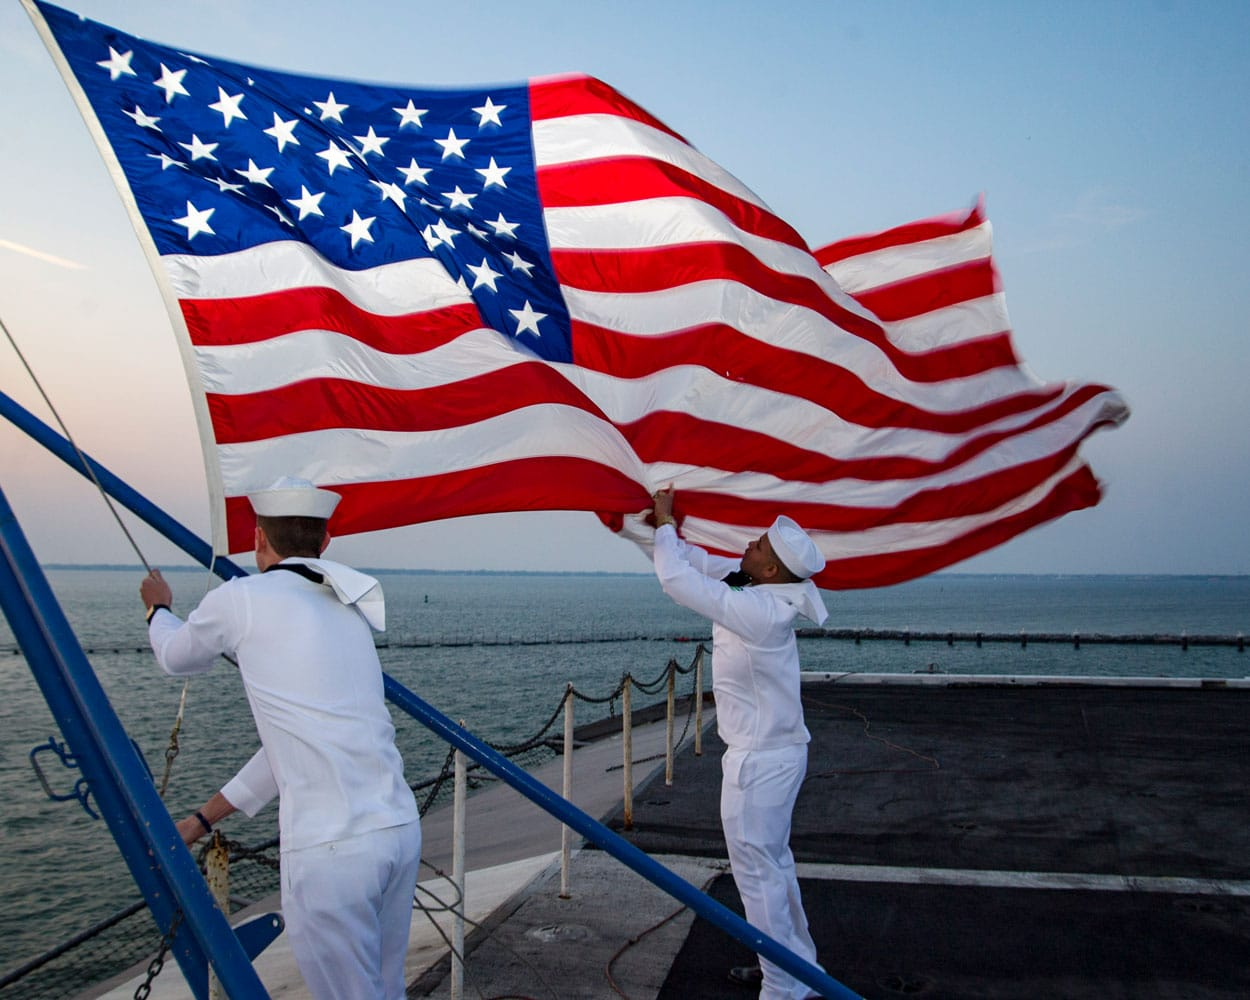 U.S. Navy Sailors assigned to the color guard aboard the aircraft carrier USS Dwight D. Eisenhower (CVN 69) retire the colors.